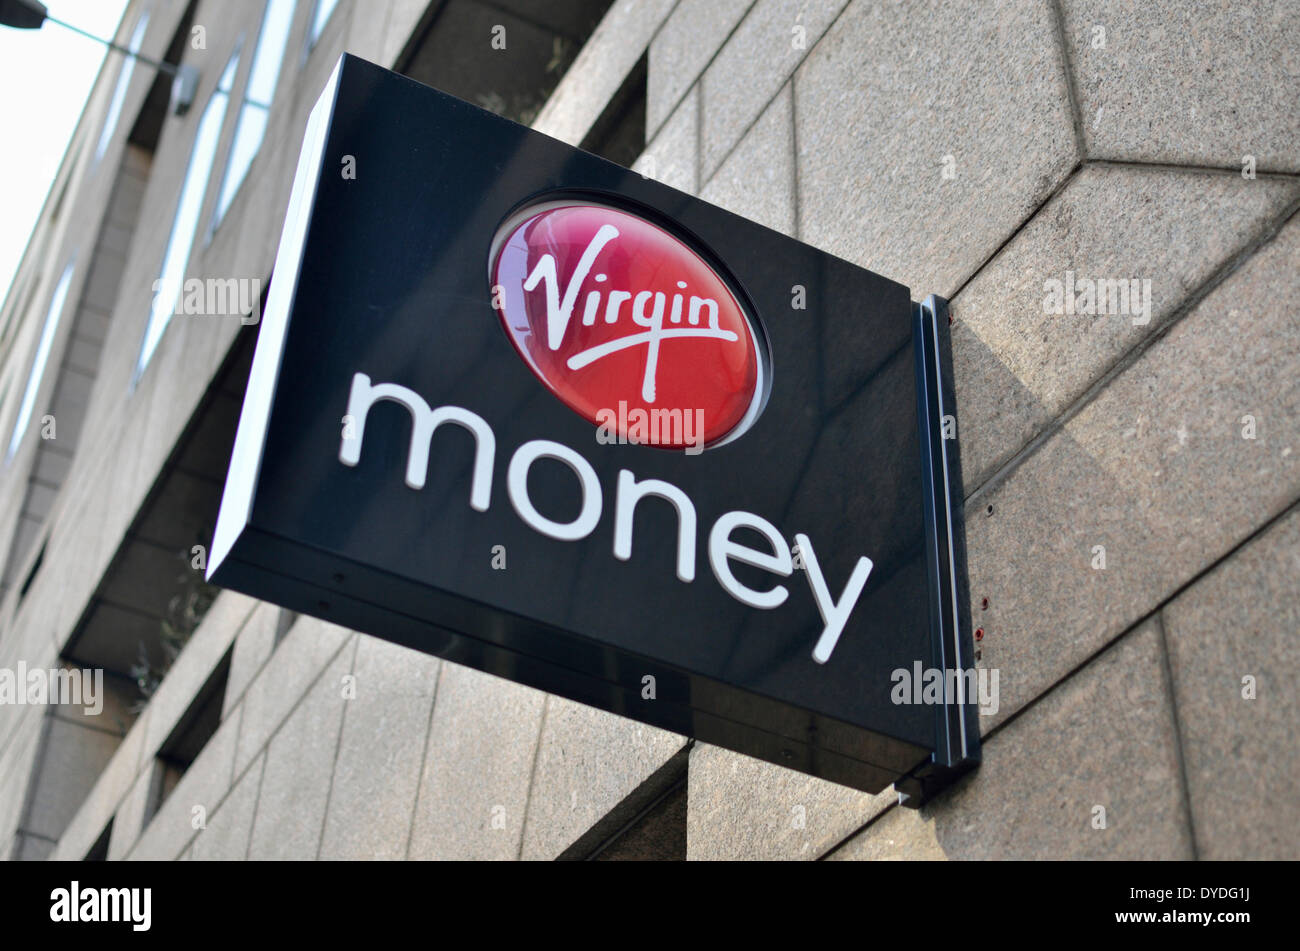 Virgin Money bank branch in Moorgate. - Stock Image